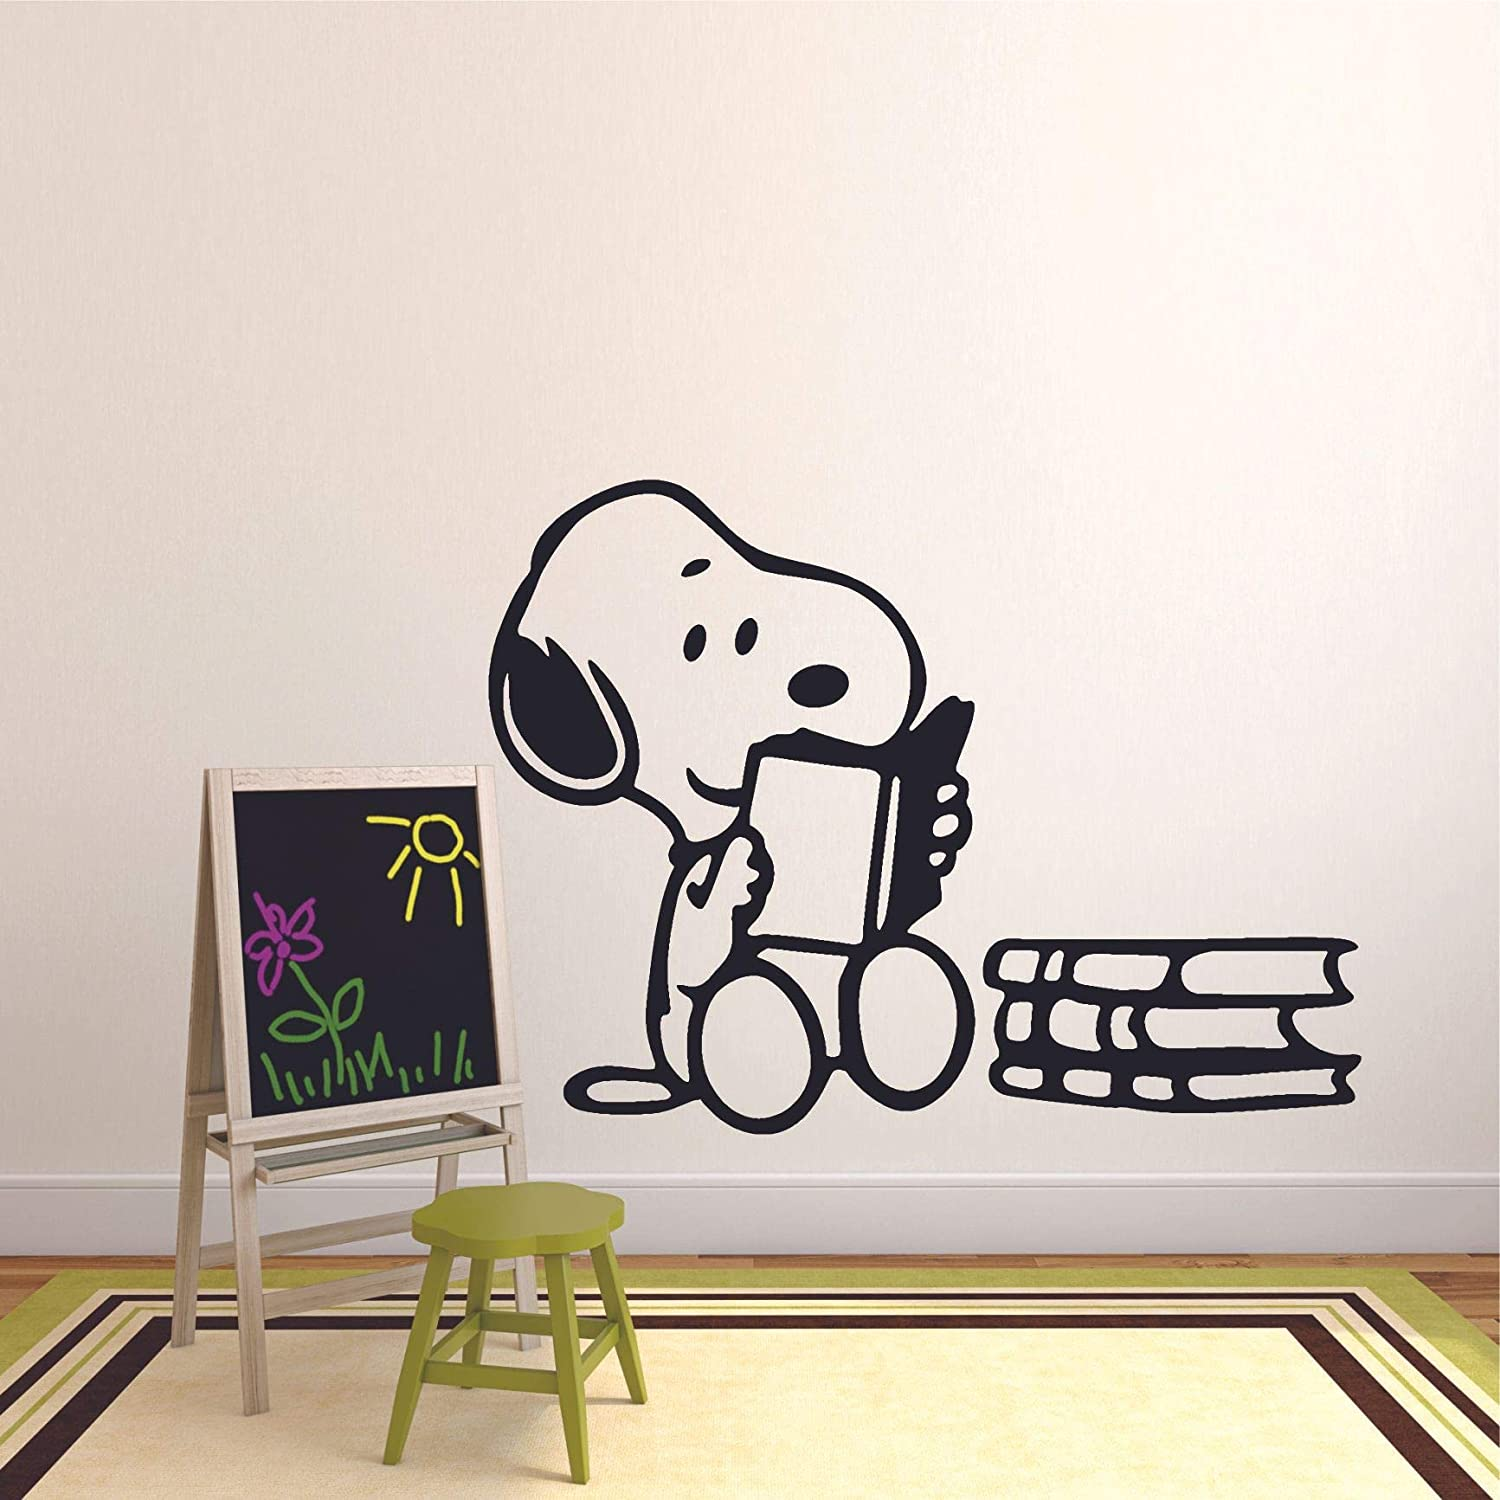 Snoopy Wall Decals for Kids Bedroom//Snoopy Dog Boy Room Decor//Vinyl Art Stickers Decal Childrens Rooms//The Peanuts Movie Cartoon Character Reading Books Fun Dogs Decoration Size 8x10 inch